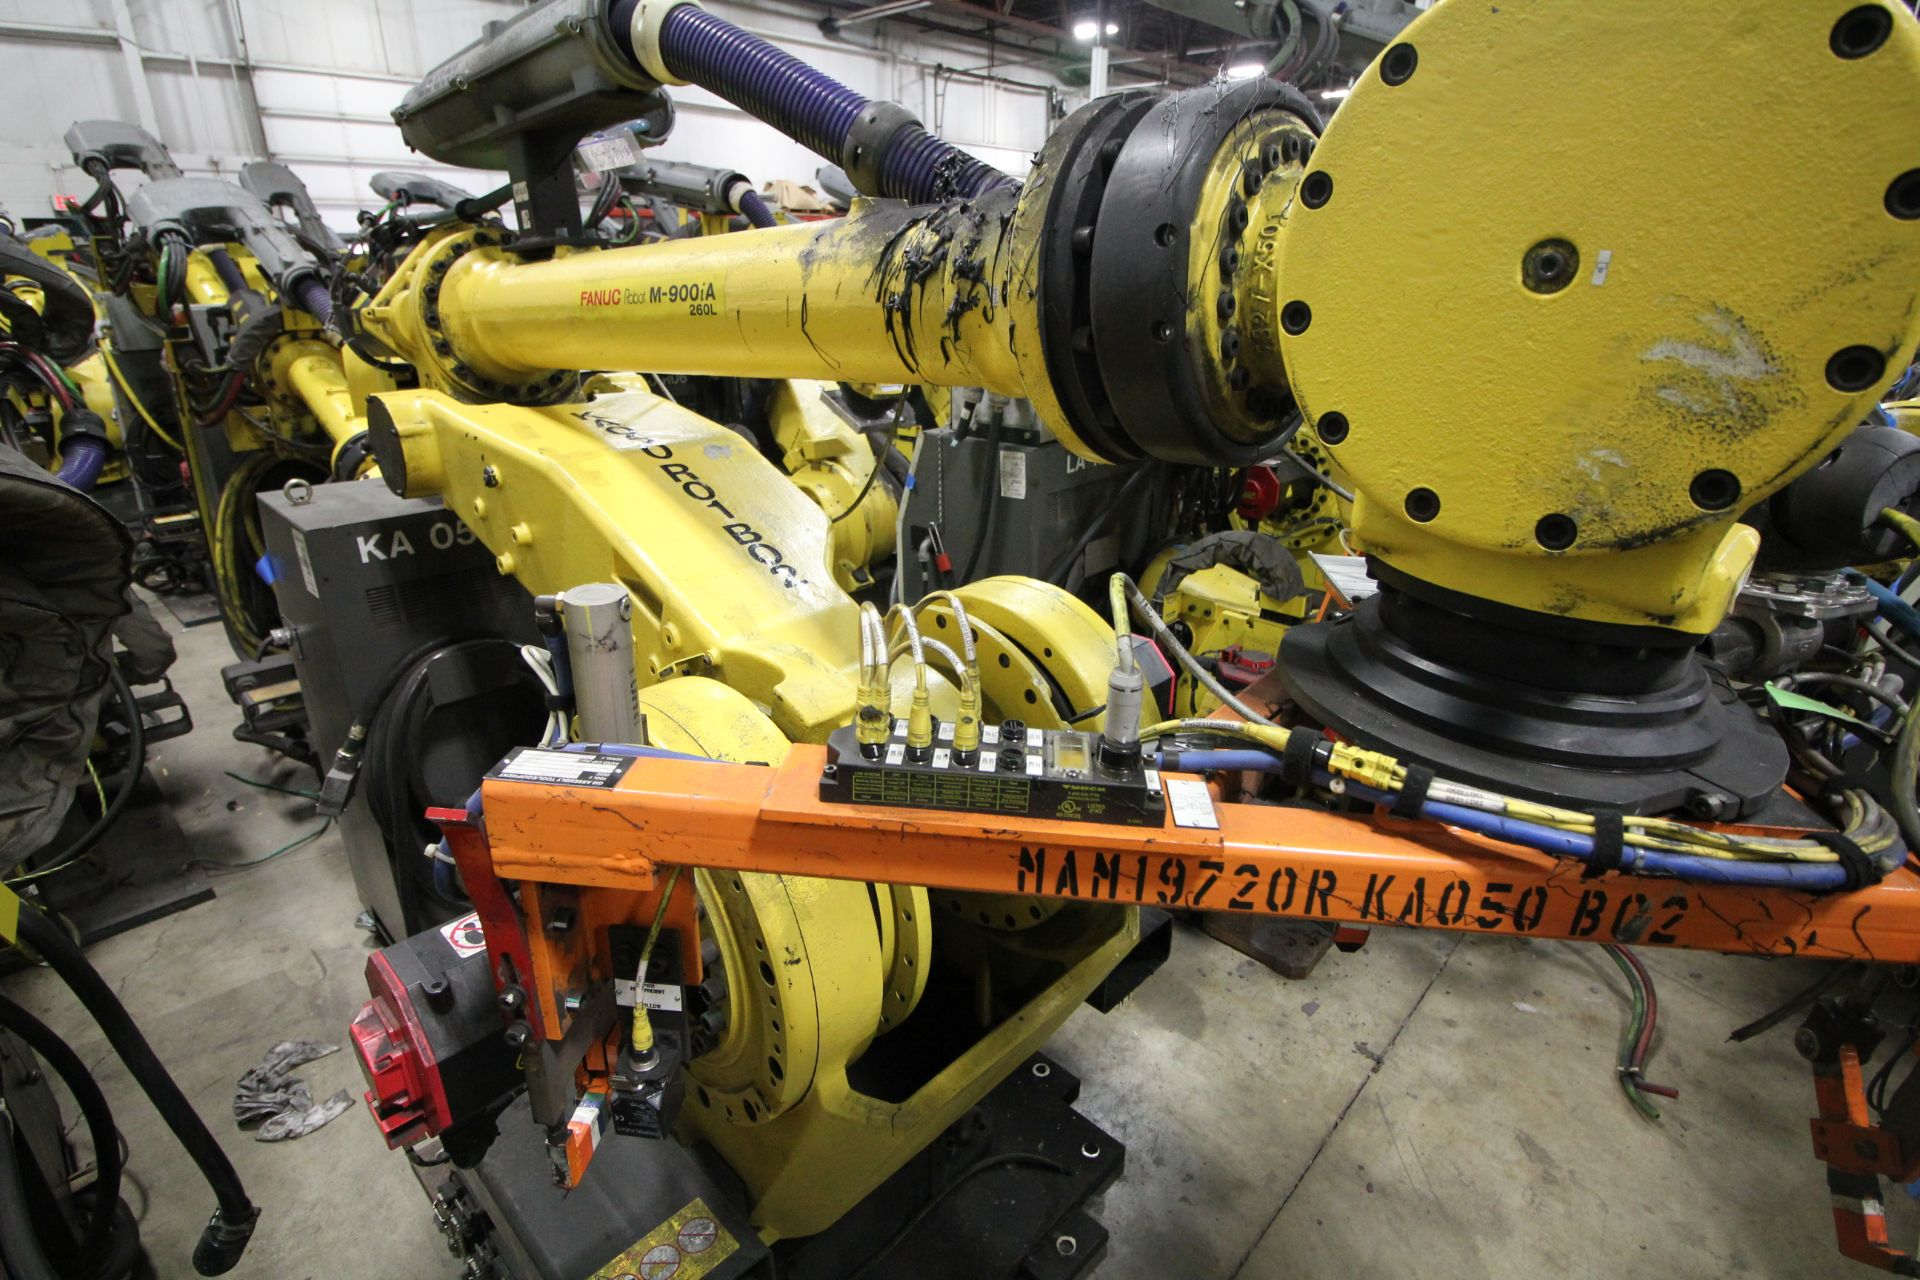 FANUC ROBOT M900iA/260L WITH R-30iA CONTROL, CABLES & TEACH PENDANT, SN 97368, YEAR 2009 - Image 2 of 9